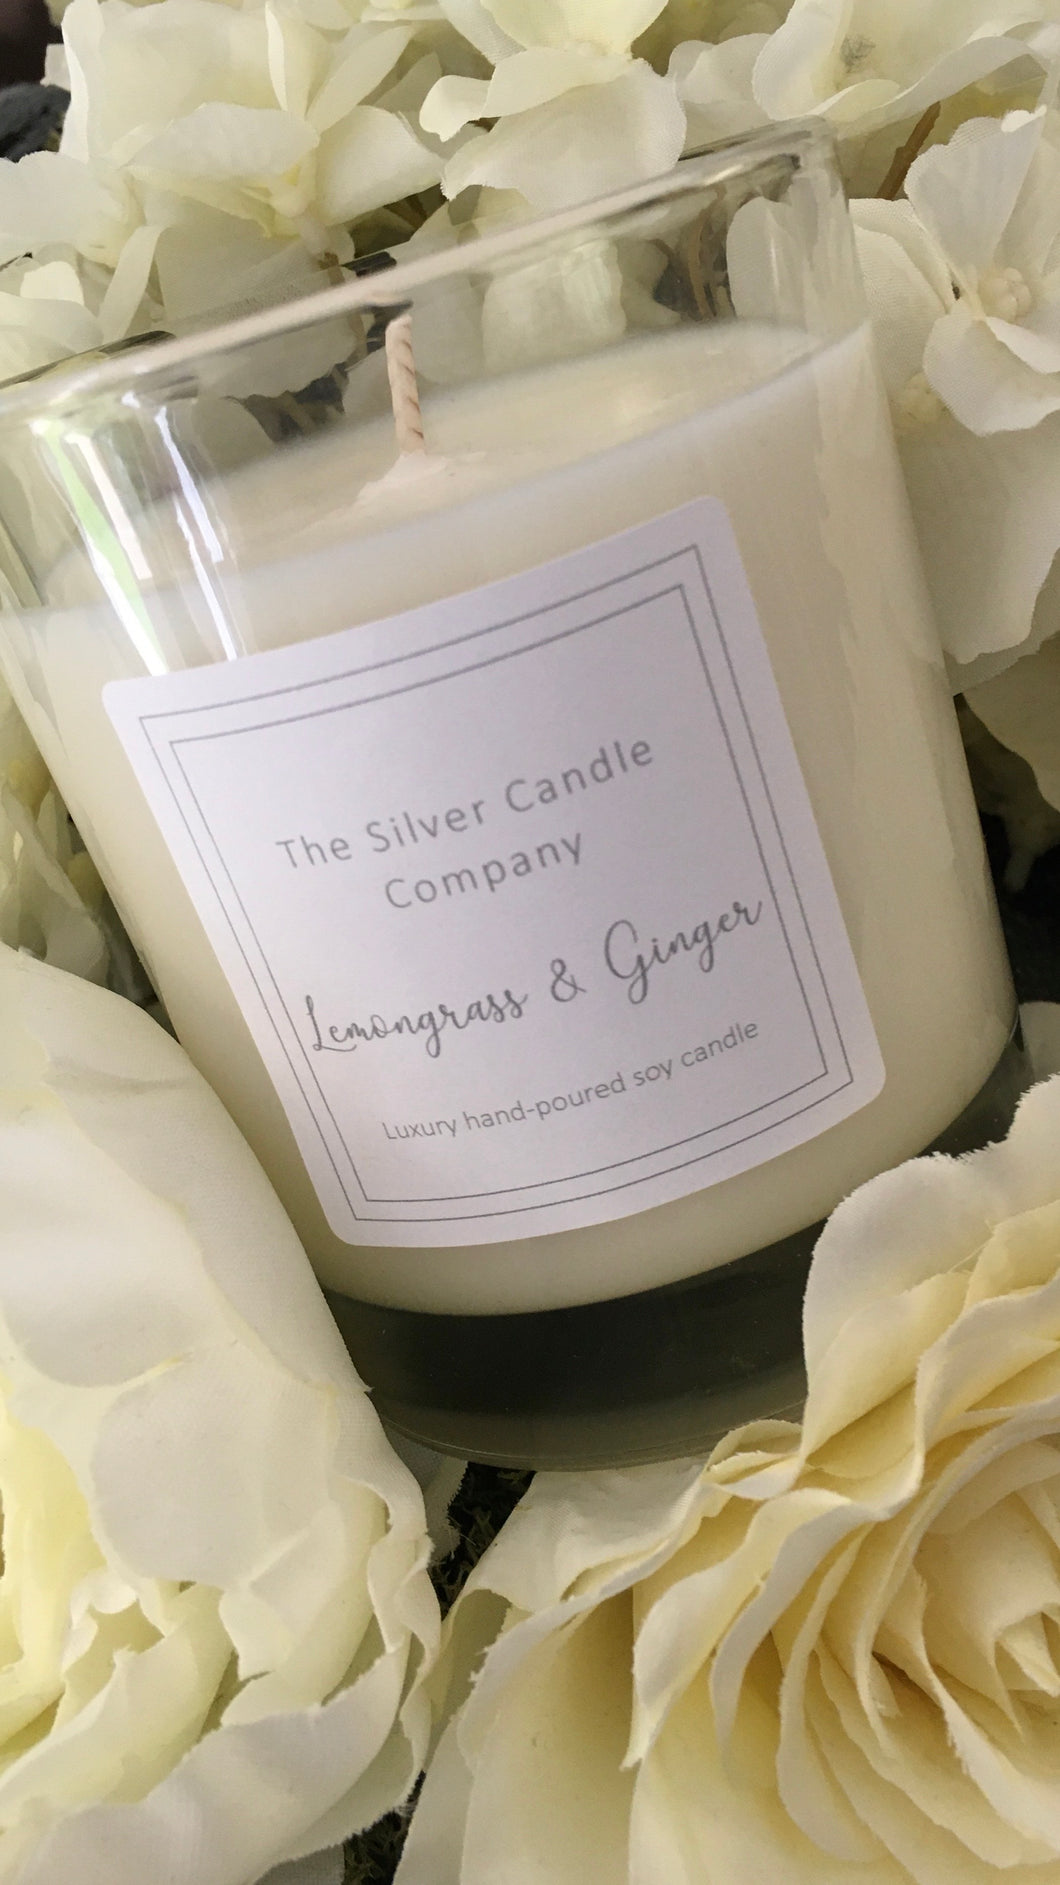 Lemongrass & Ginger Signature Candle